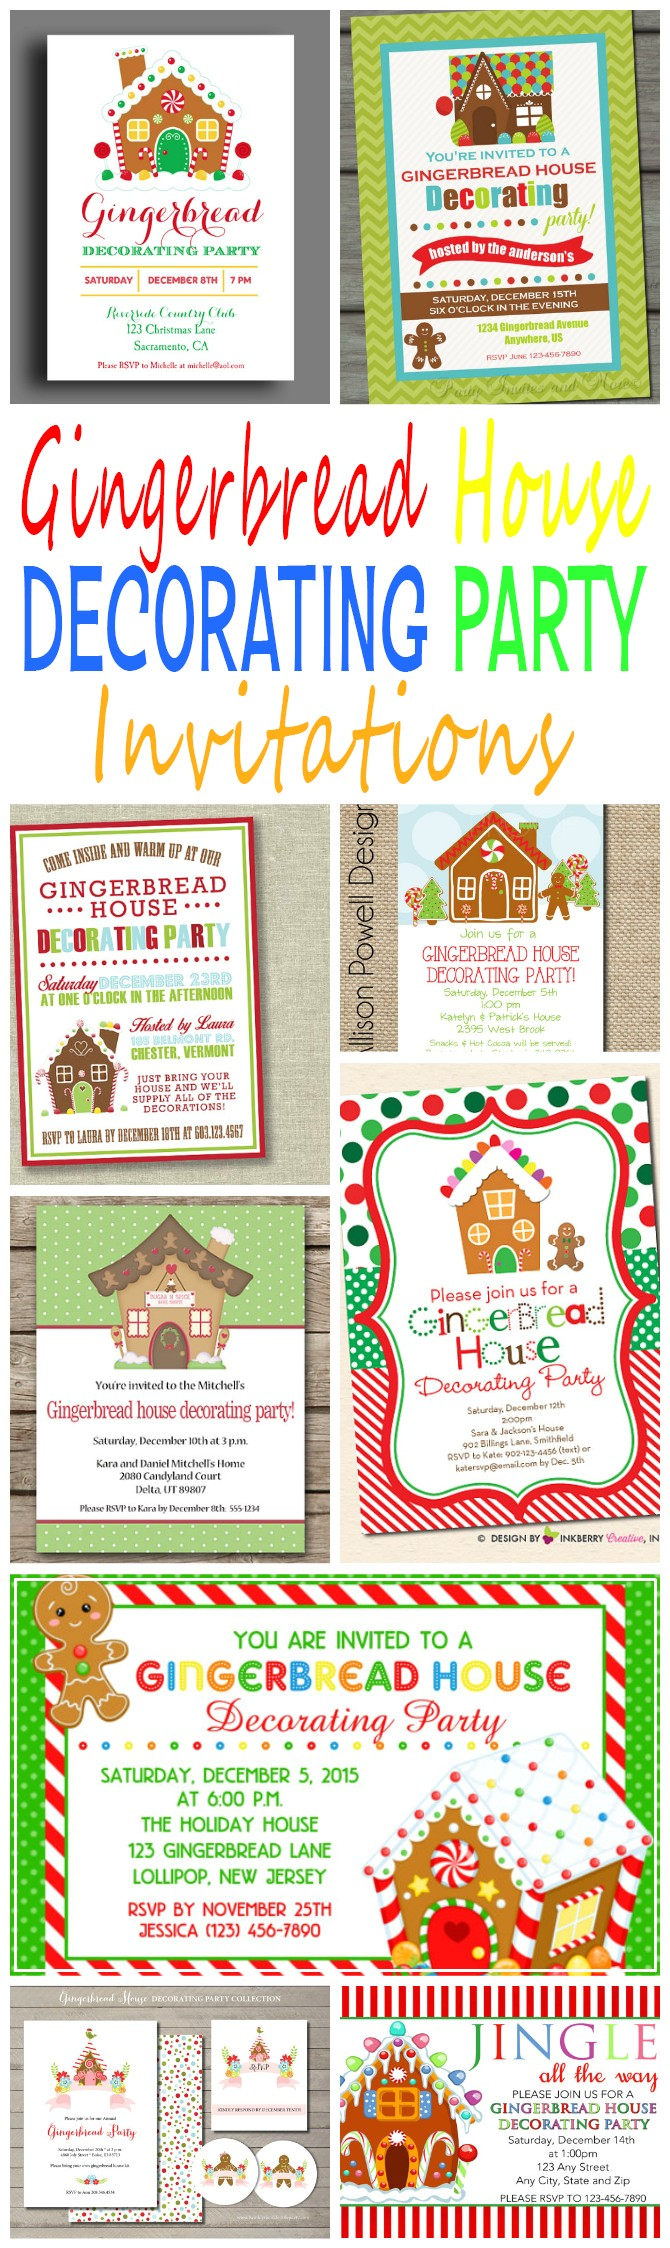 gingerbread house decorating party invitations